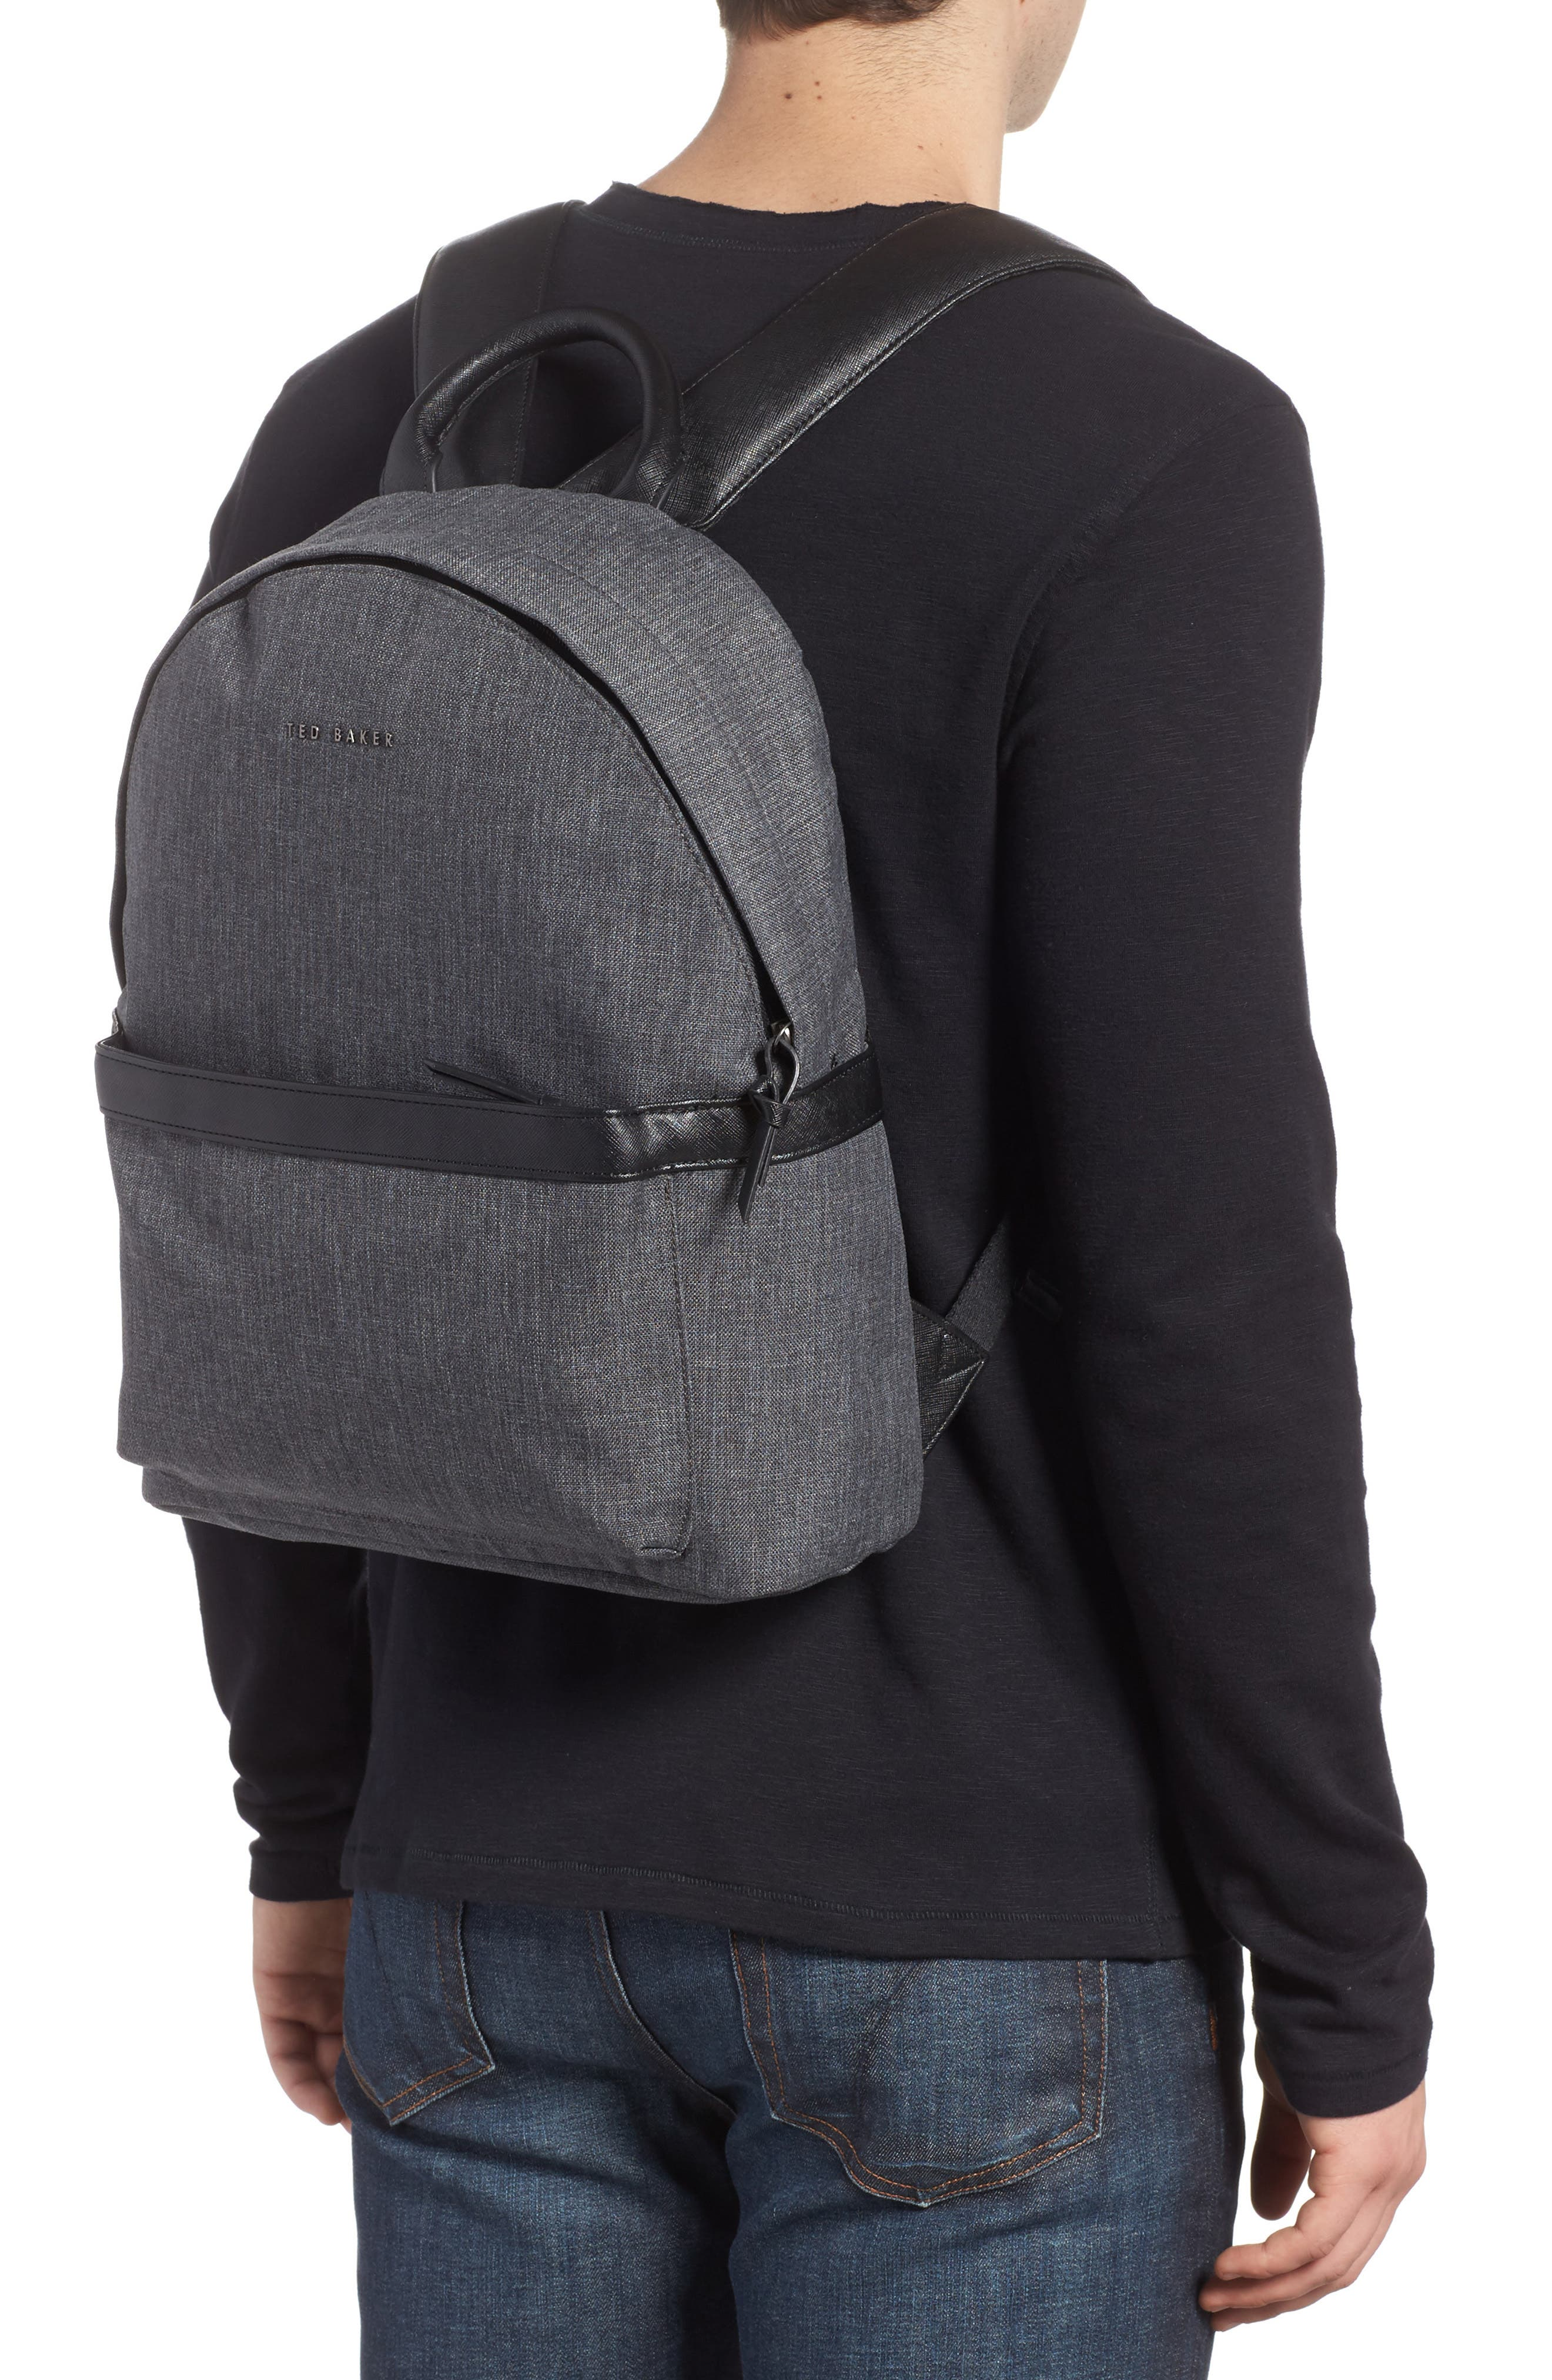 Lychee Backpack,                             Alternate thumbnail 2, color,                             Charcoal